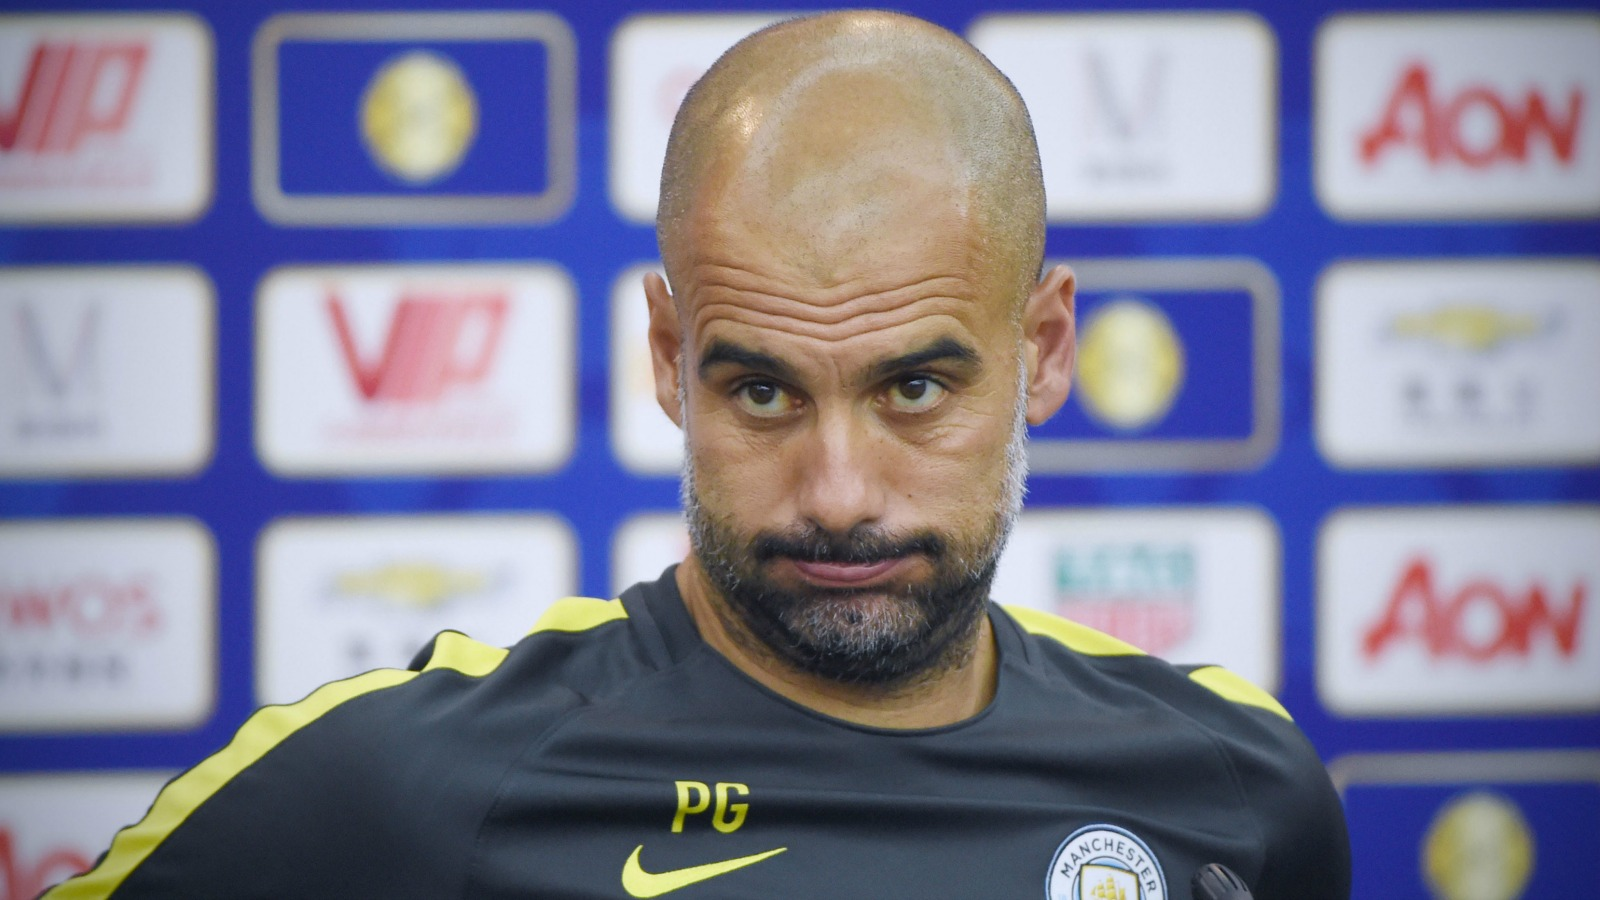 Pep Guardiola bans Manchester City players from eating pizza